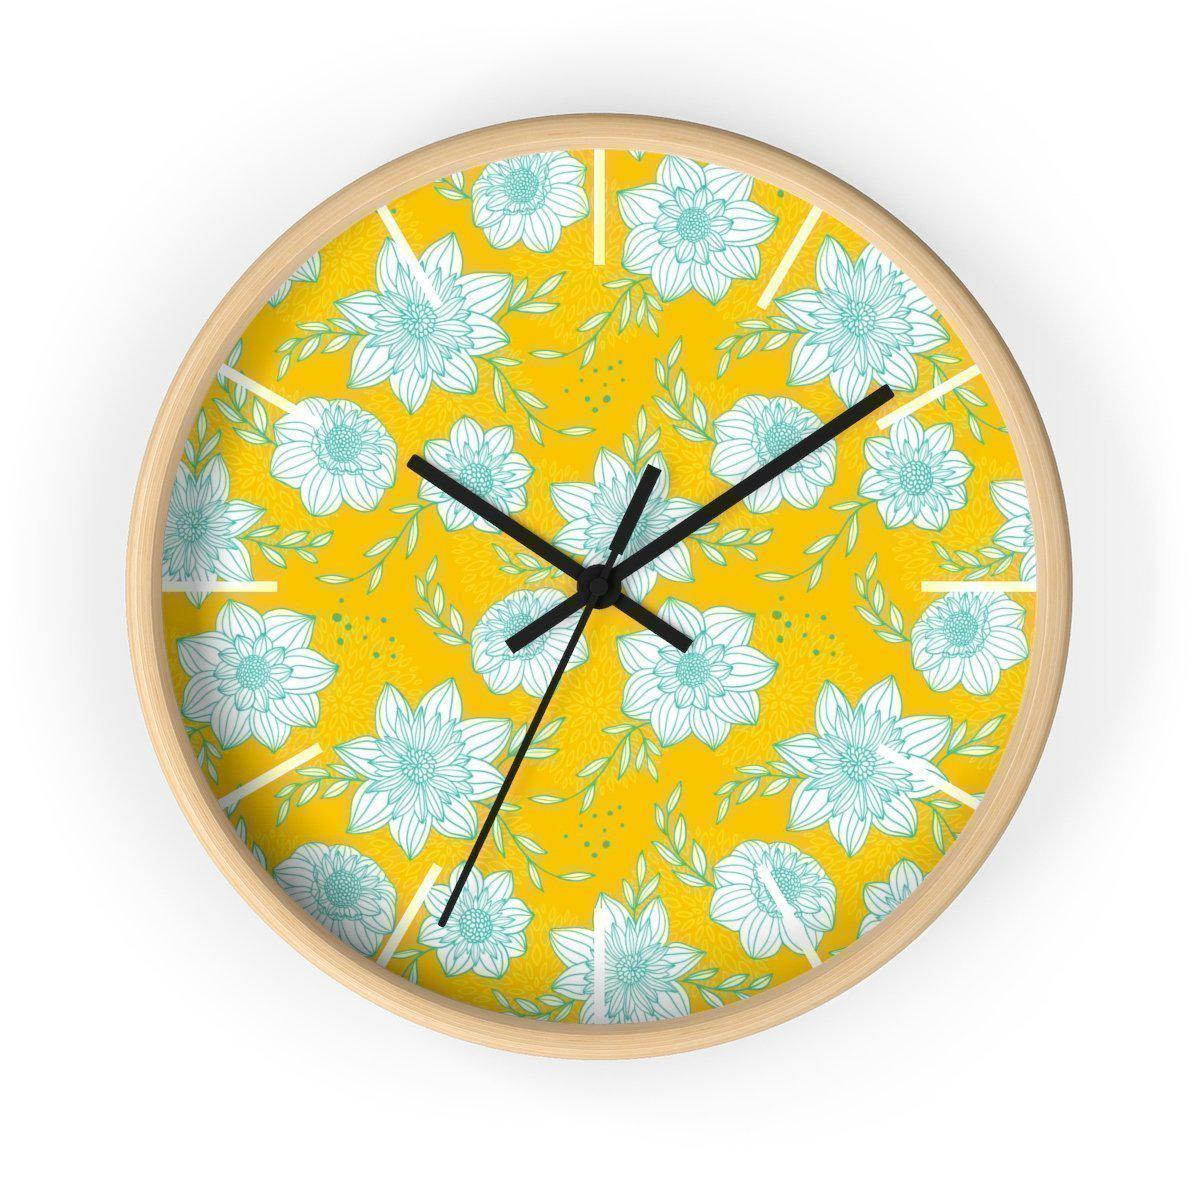 Maison d'Elite Floral Wall clock-Home Décor › Accents › Wall Decor › Clocks & Sculptures-Maison d'Elite-Wooden-Black-Très Elite